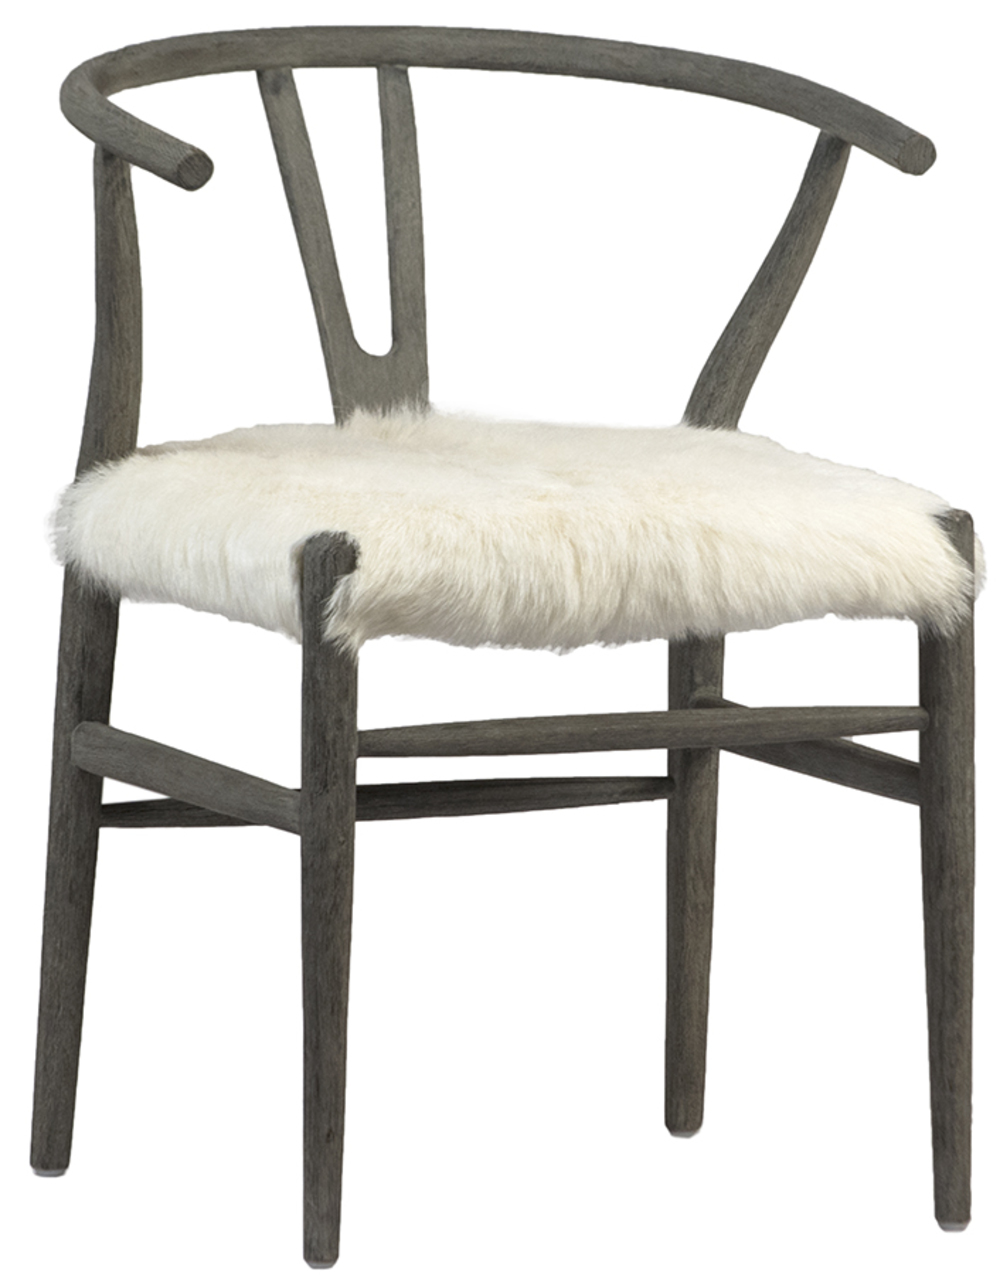 Dovetail Furniture - Ritter Dining Chair